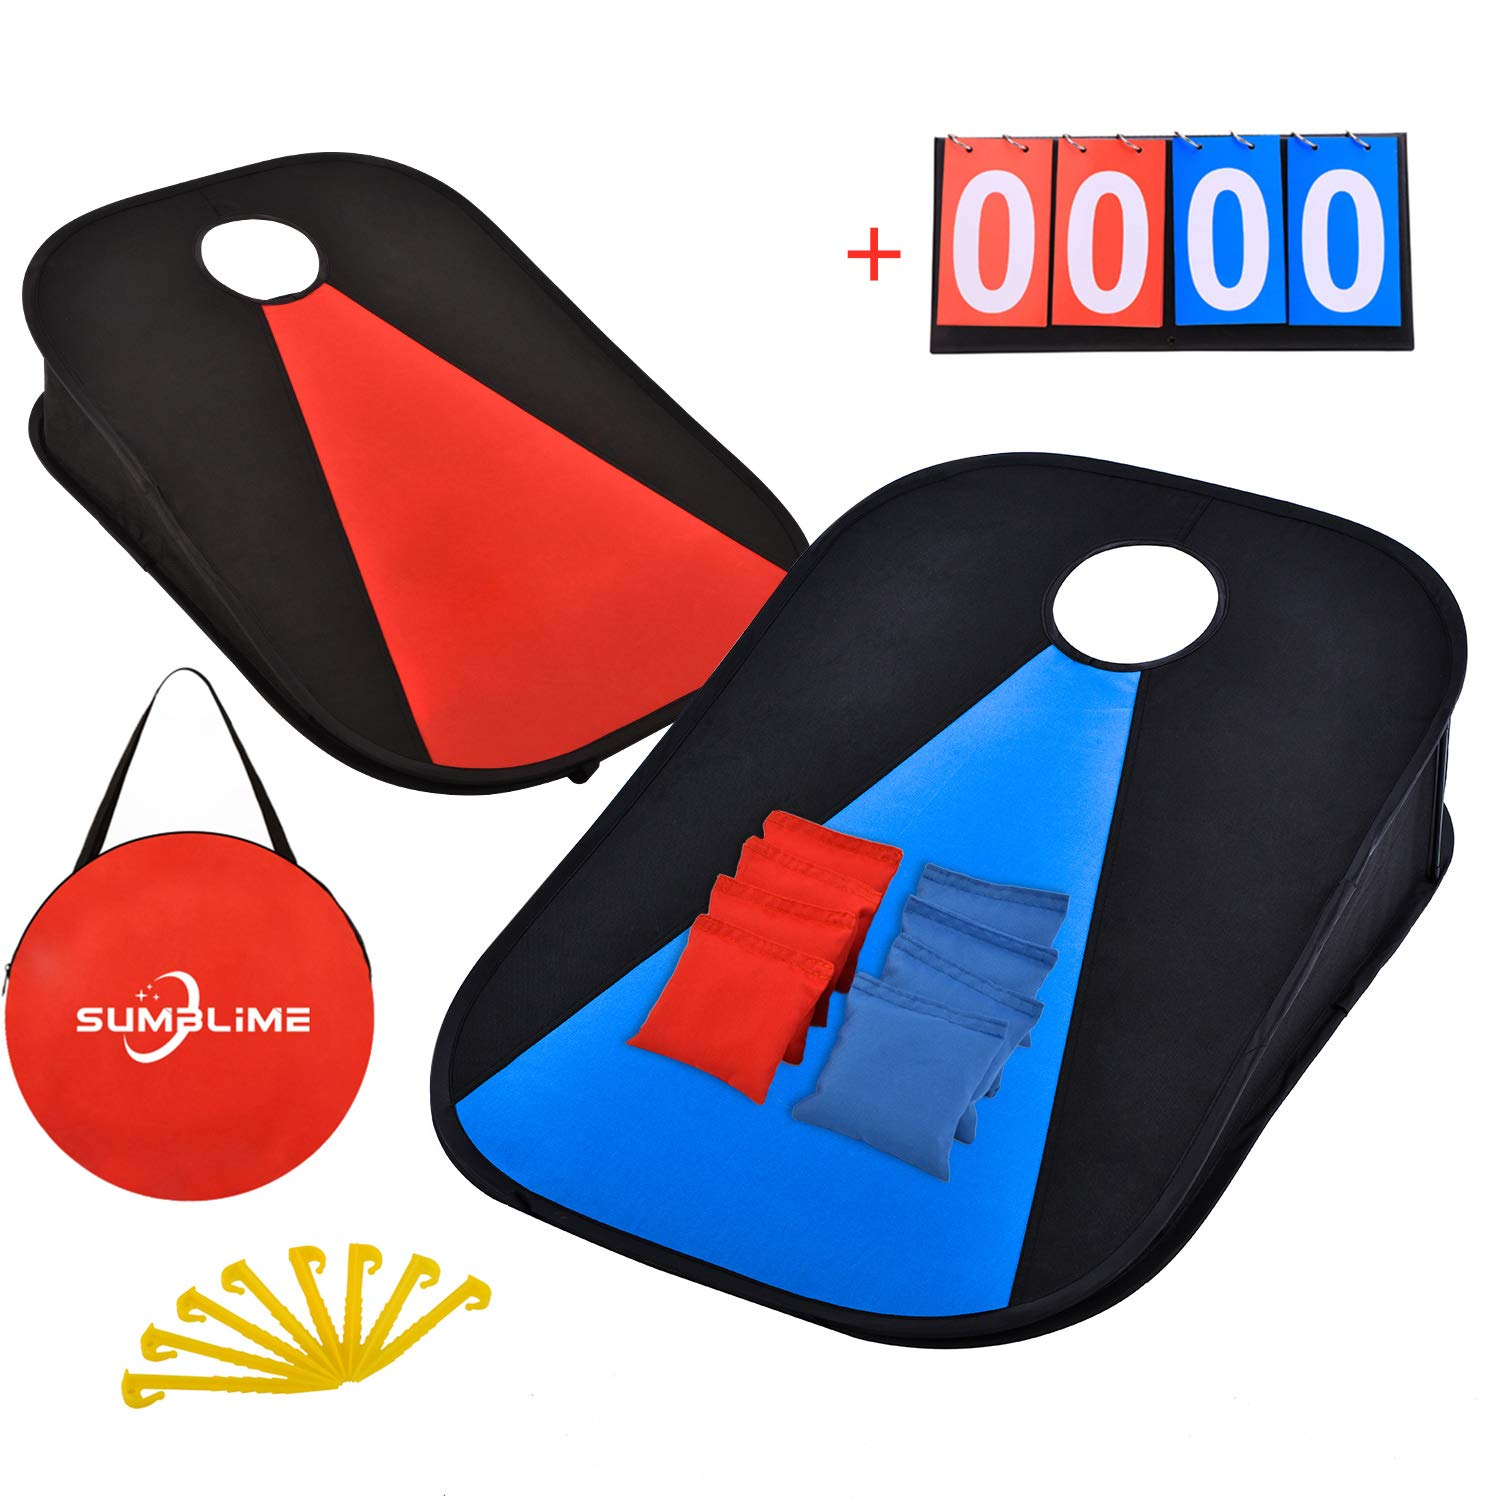 Corn Hole Outdoor Game, 2PCS Portable Foldable Cornhole Boards & 8PCS All Weather Bean Bag Toss & Scoreboard, Outside / Indoor Game for Adults, Kids, Family, for Camping, Travel, Beach, Lawn, Backyard by SUMBLIME